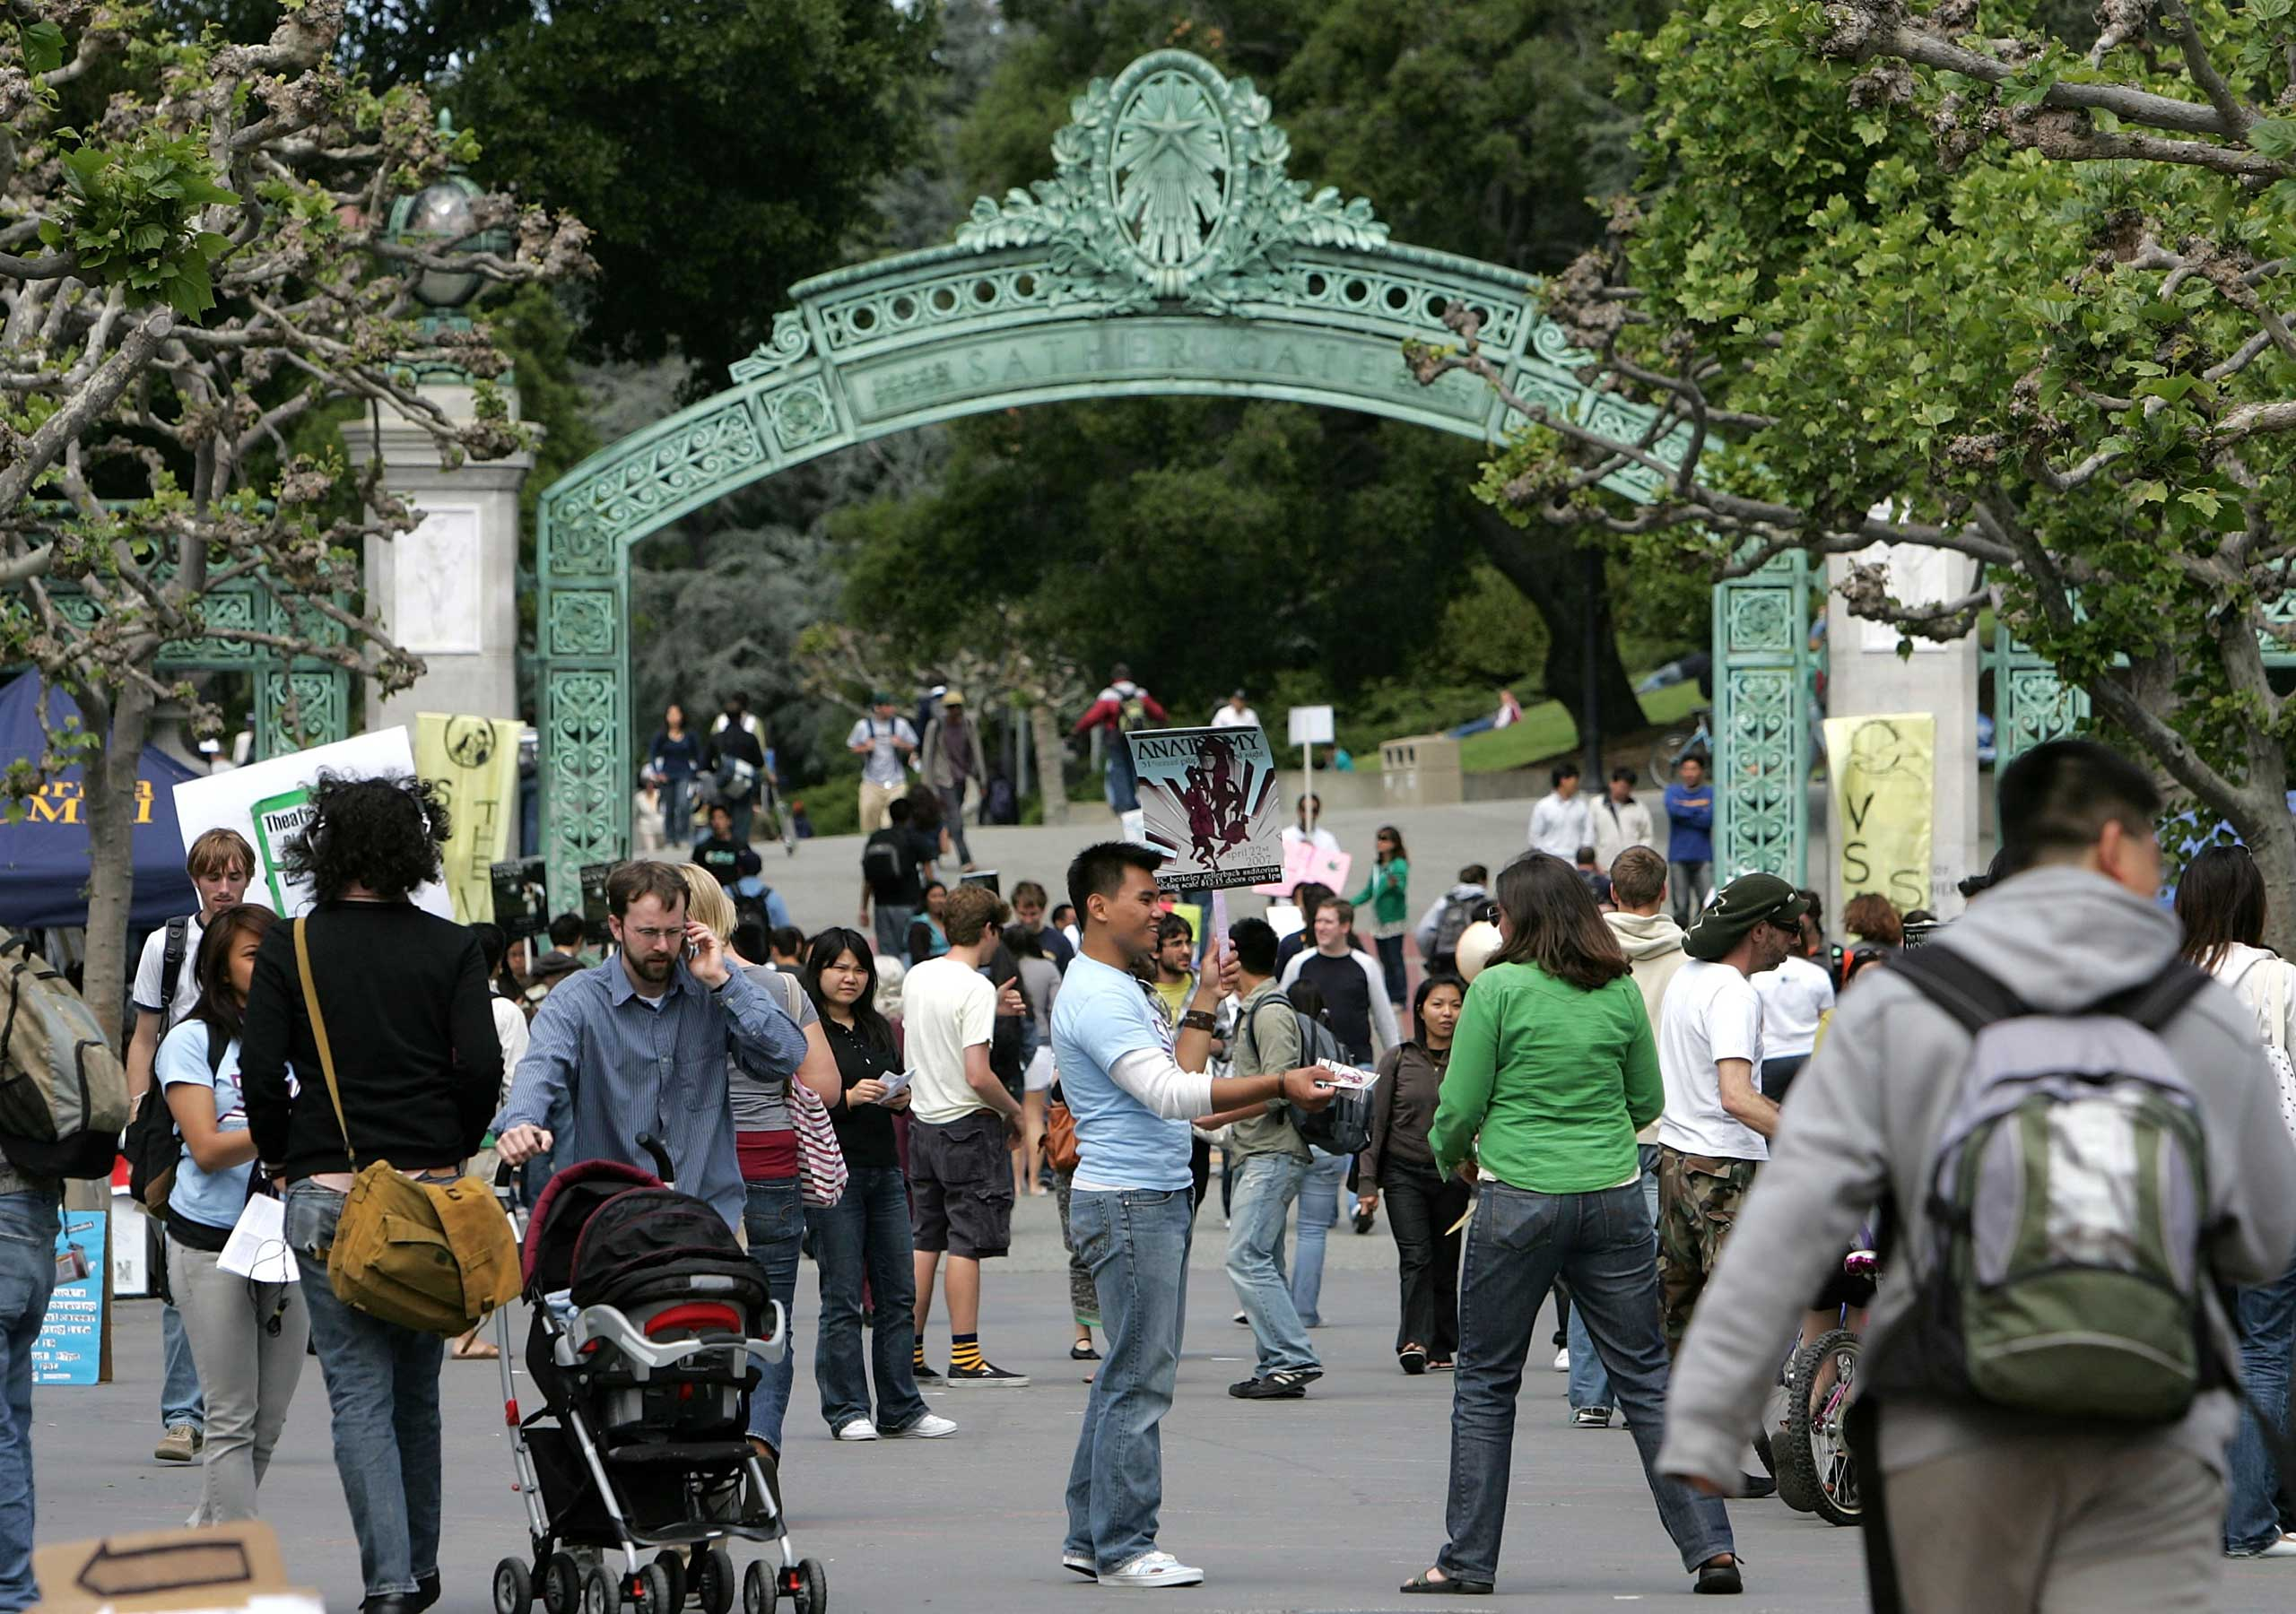 UC Berkeley students walk through Sproul Plaza on the UC Berkeley campus, April 17, 2007 in Berkeley. The University of California system has mandated that all incoming students be vaccinated.